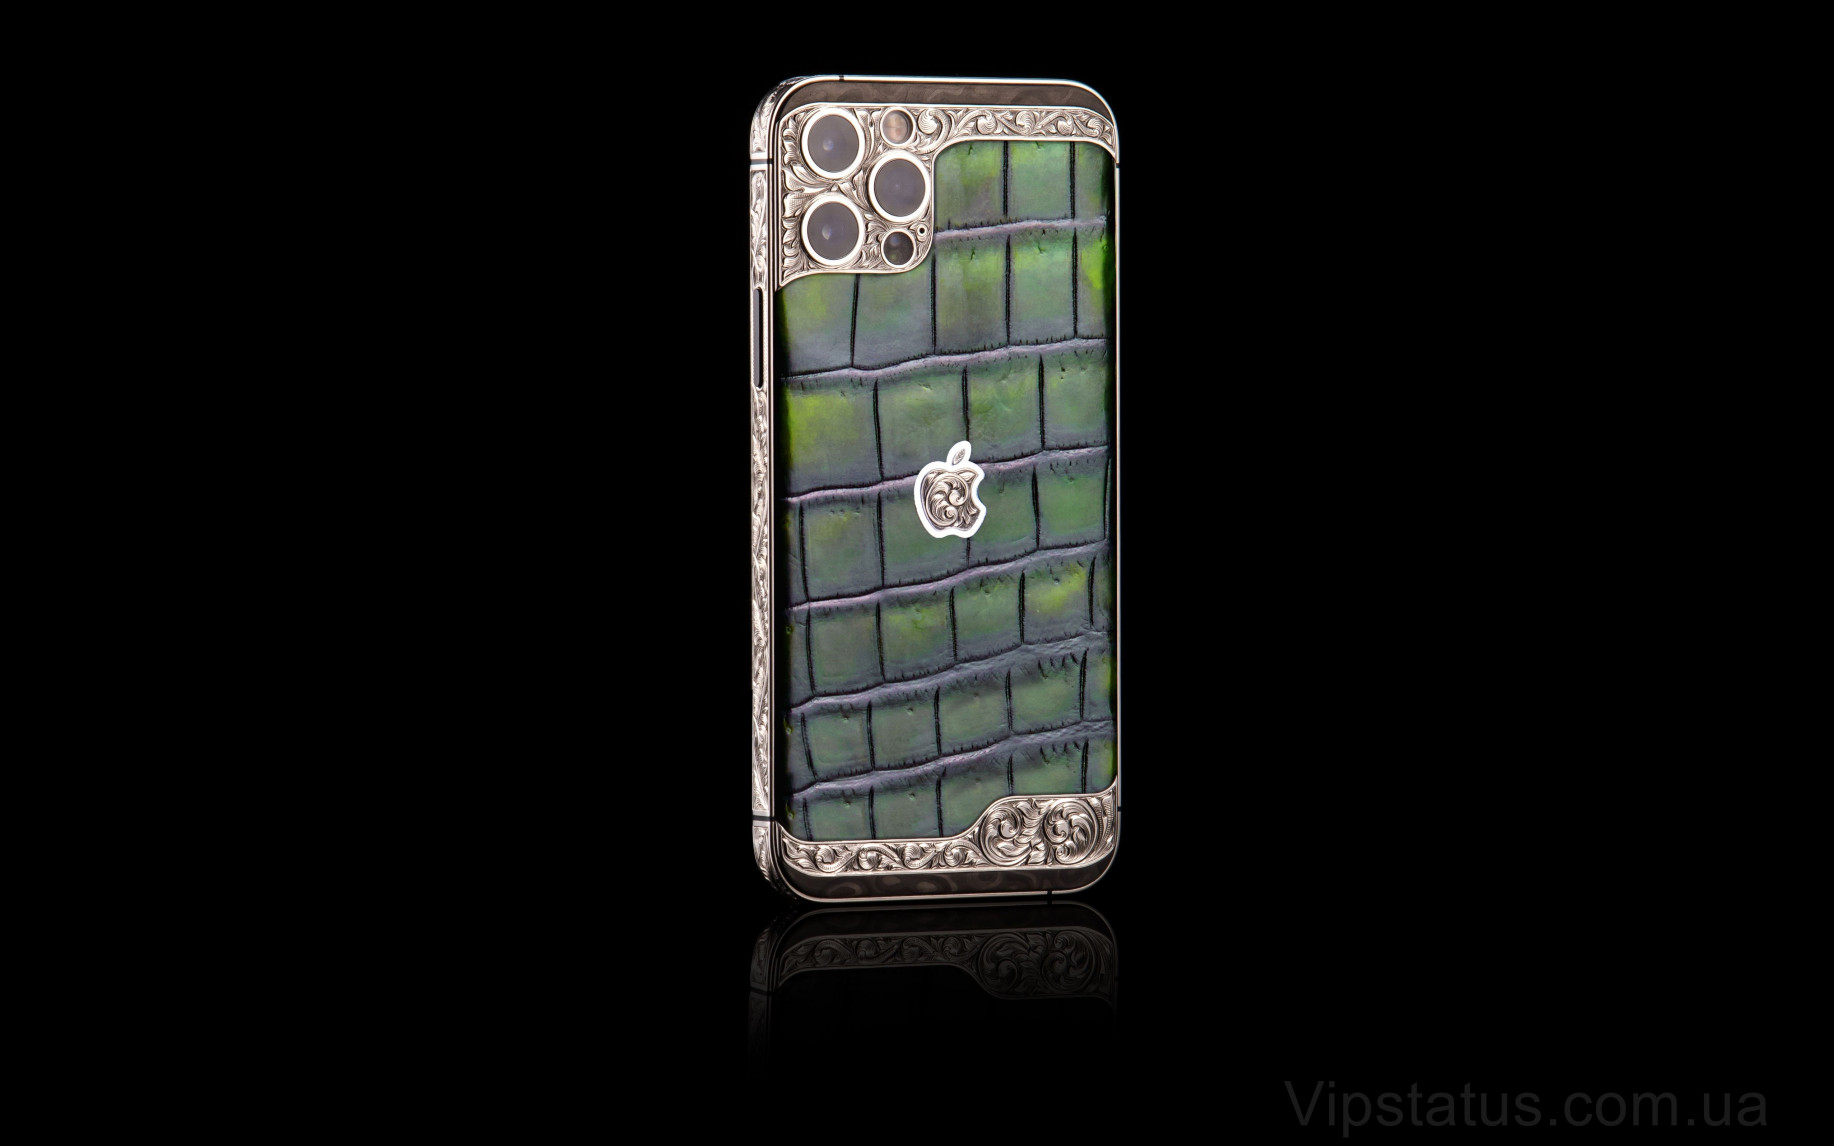 Elite Vintage Eastern Emerald IPHONE 12 PRO MAX 512 GB Vintage Eastern Emerald IPHONE 12 PRO MAX 512 GB image 7